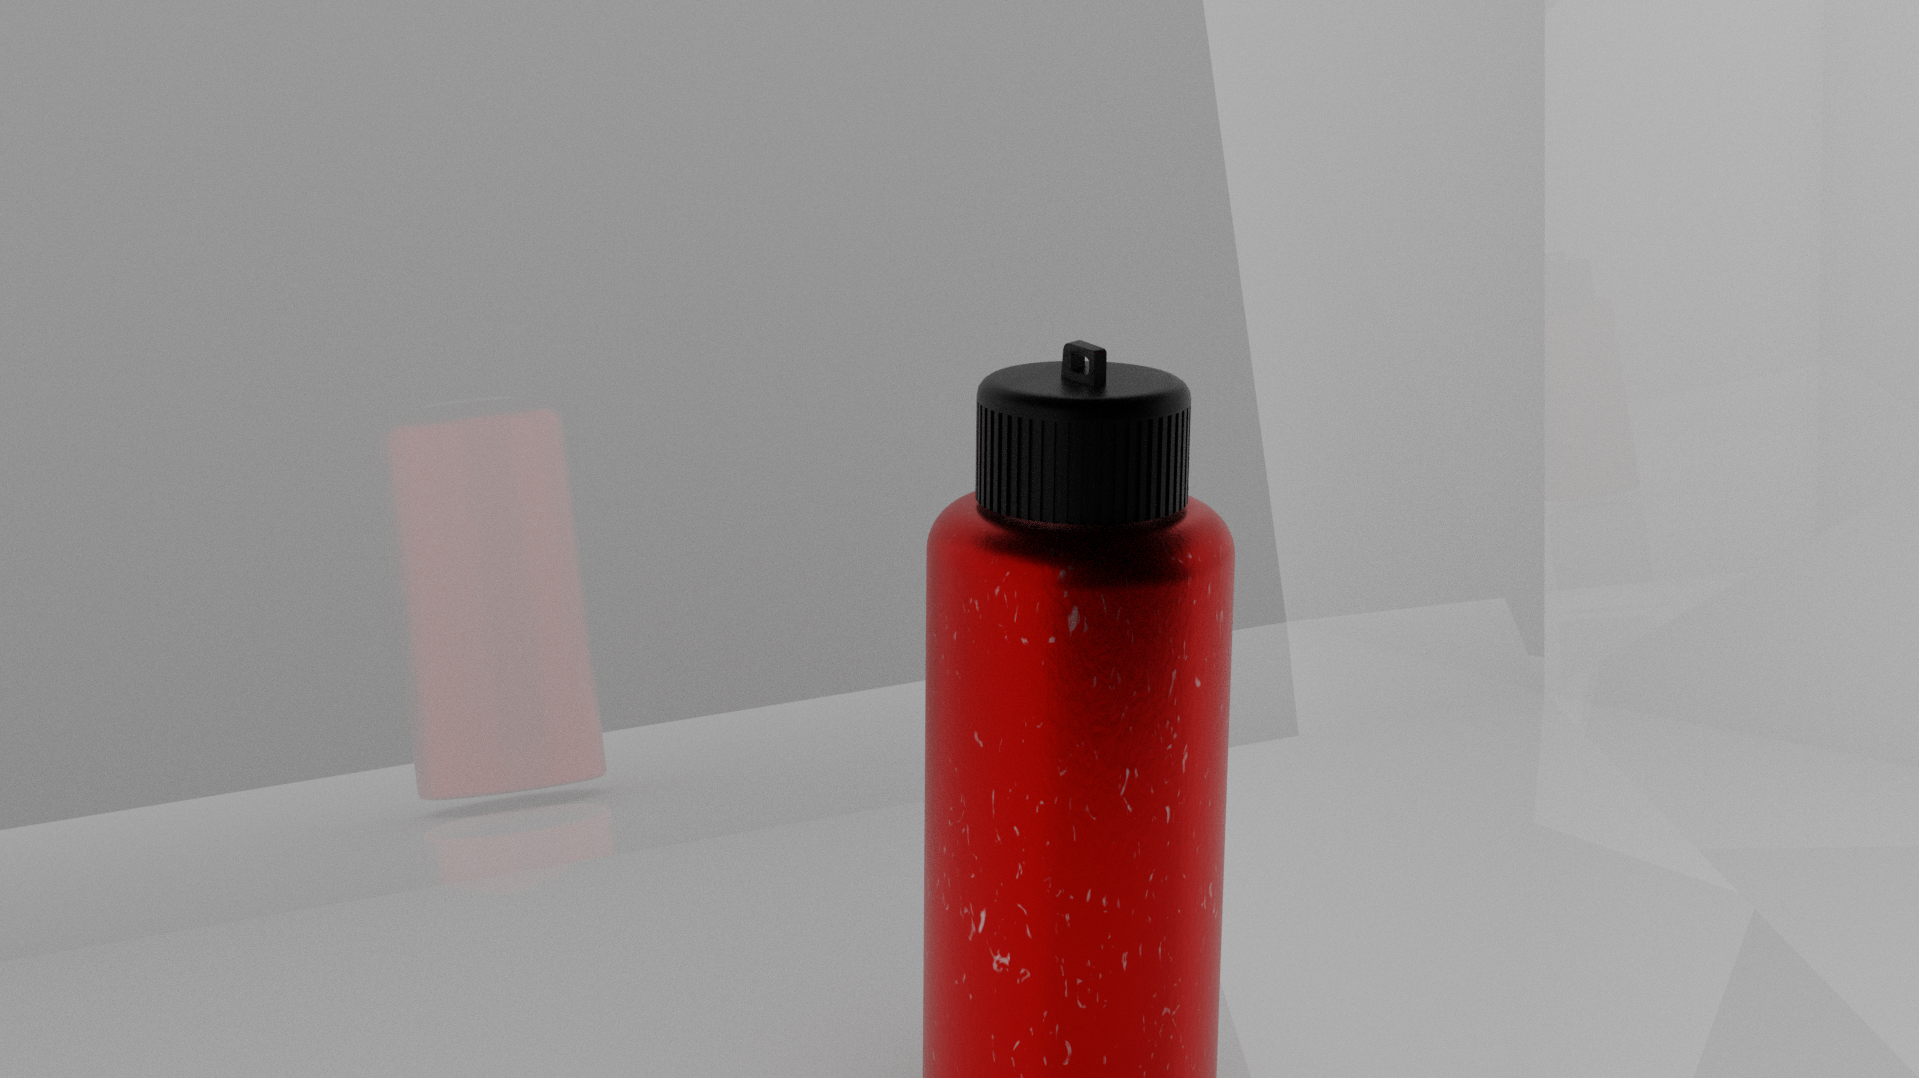 Bottle preview image 1